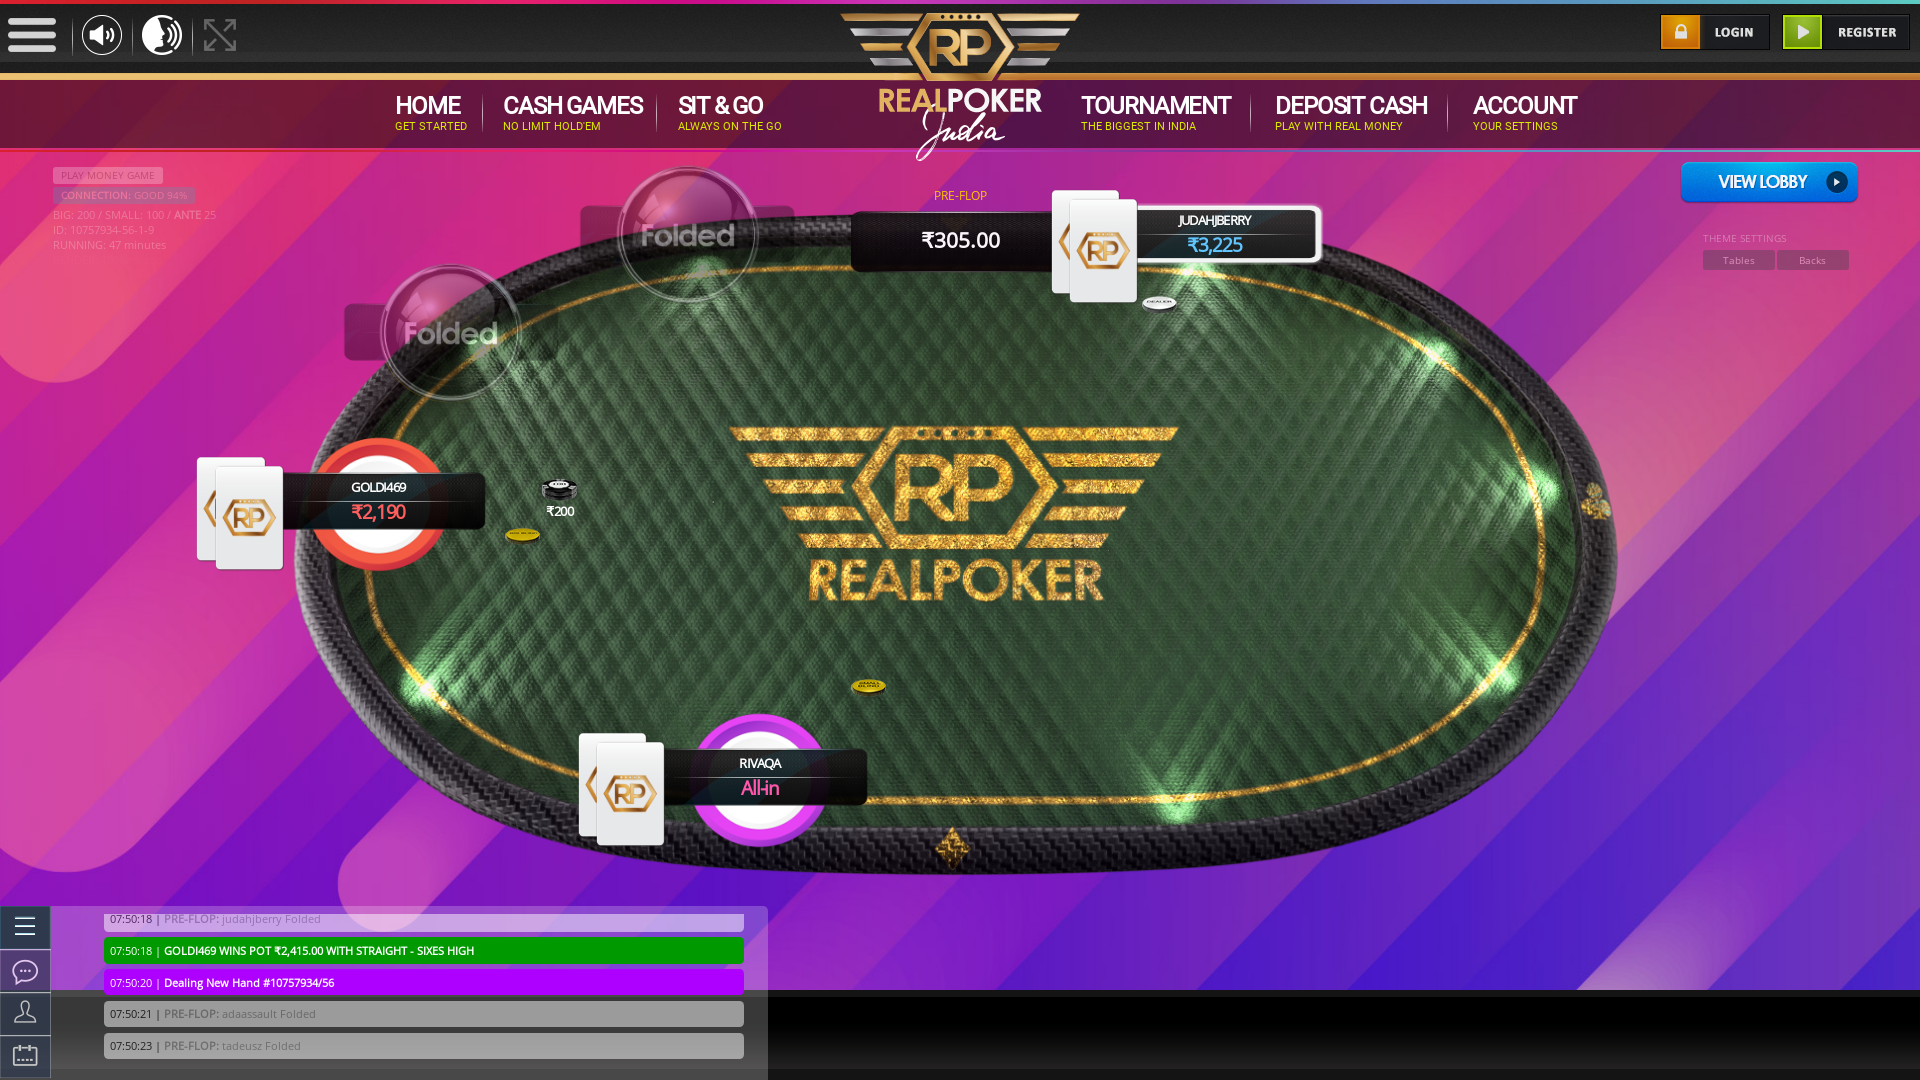 Matunga, Mumbai online poker game on a 10 player table in the 47th minute of the game